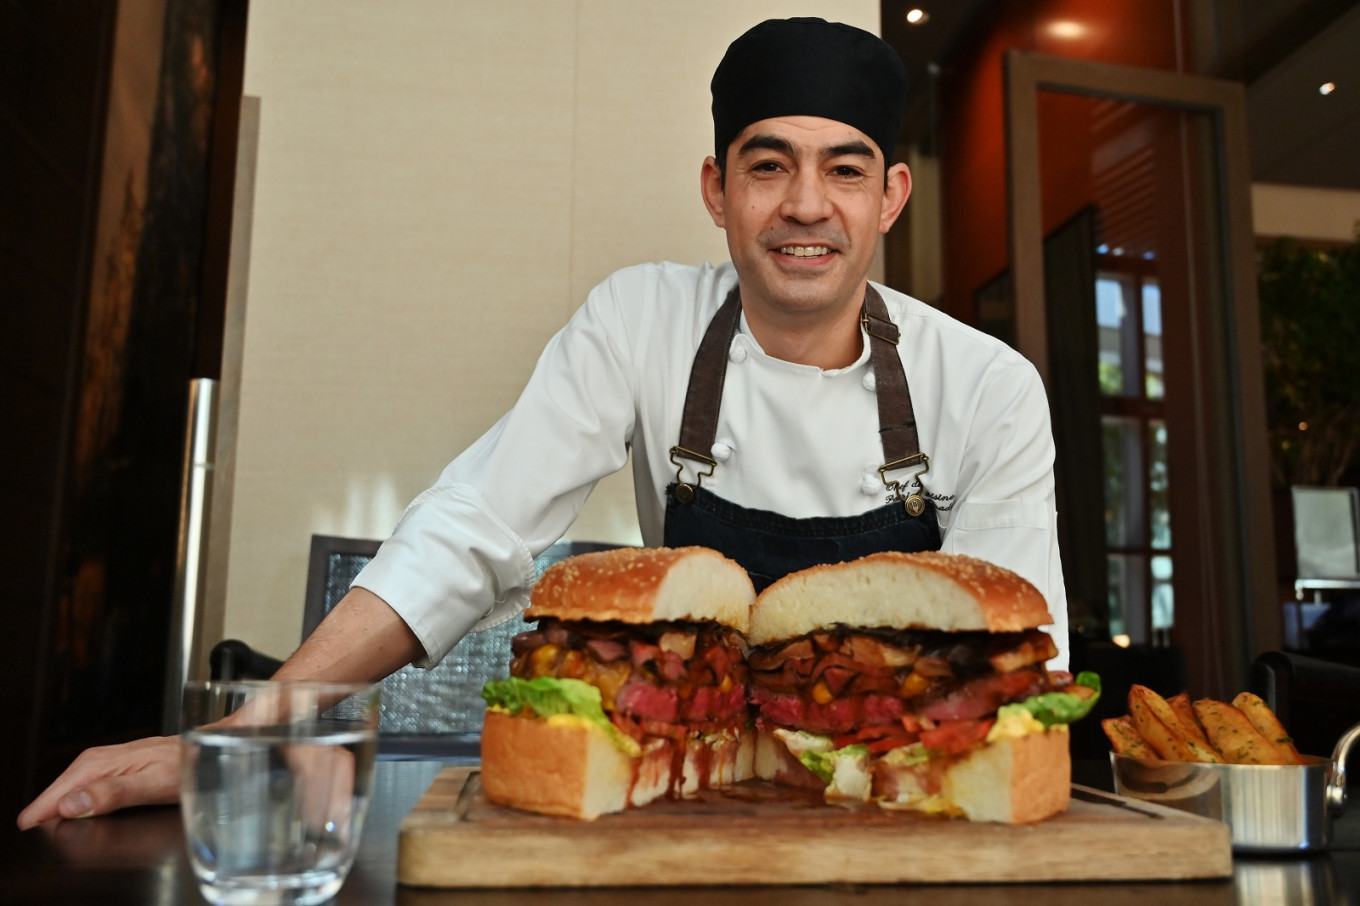 Emperor burger: Tokyo chef whips up $900 monster for new monarch